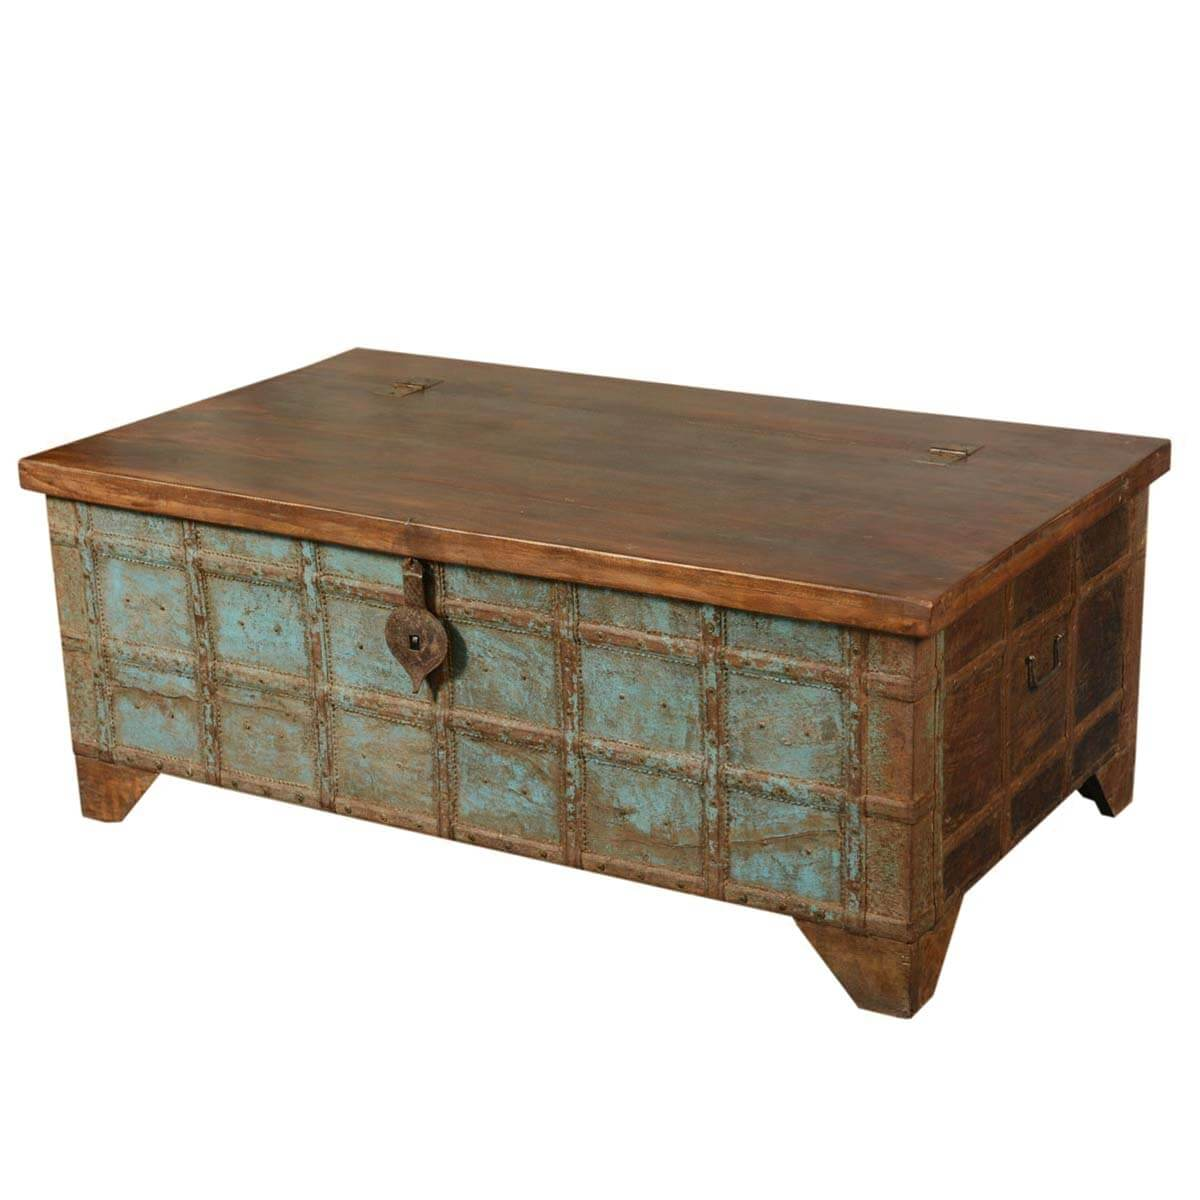 Captain 39 s stash reclaimed wood coffee table storage chest trunk Coffee table chest with storage